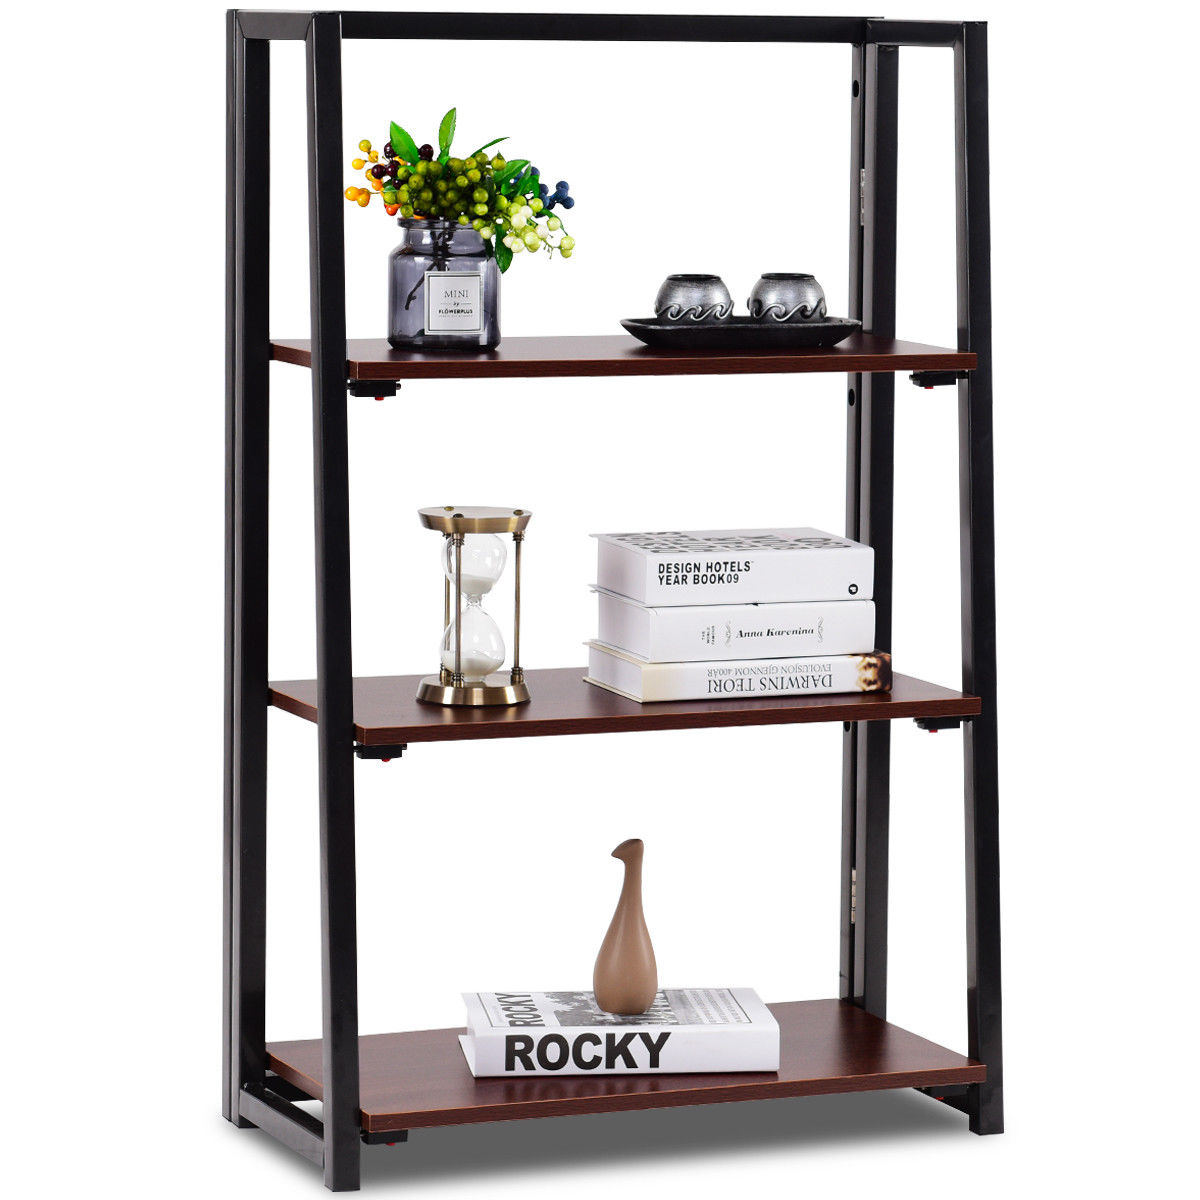 Gymax 3 Tier Folding Ladder Bookcase Multifunctional Plant Flower Display Stand Shelf